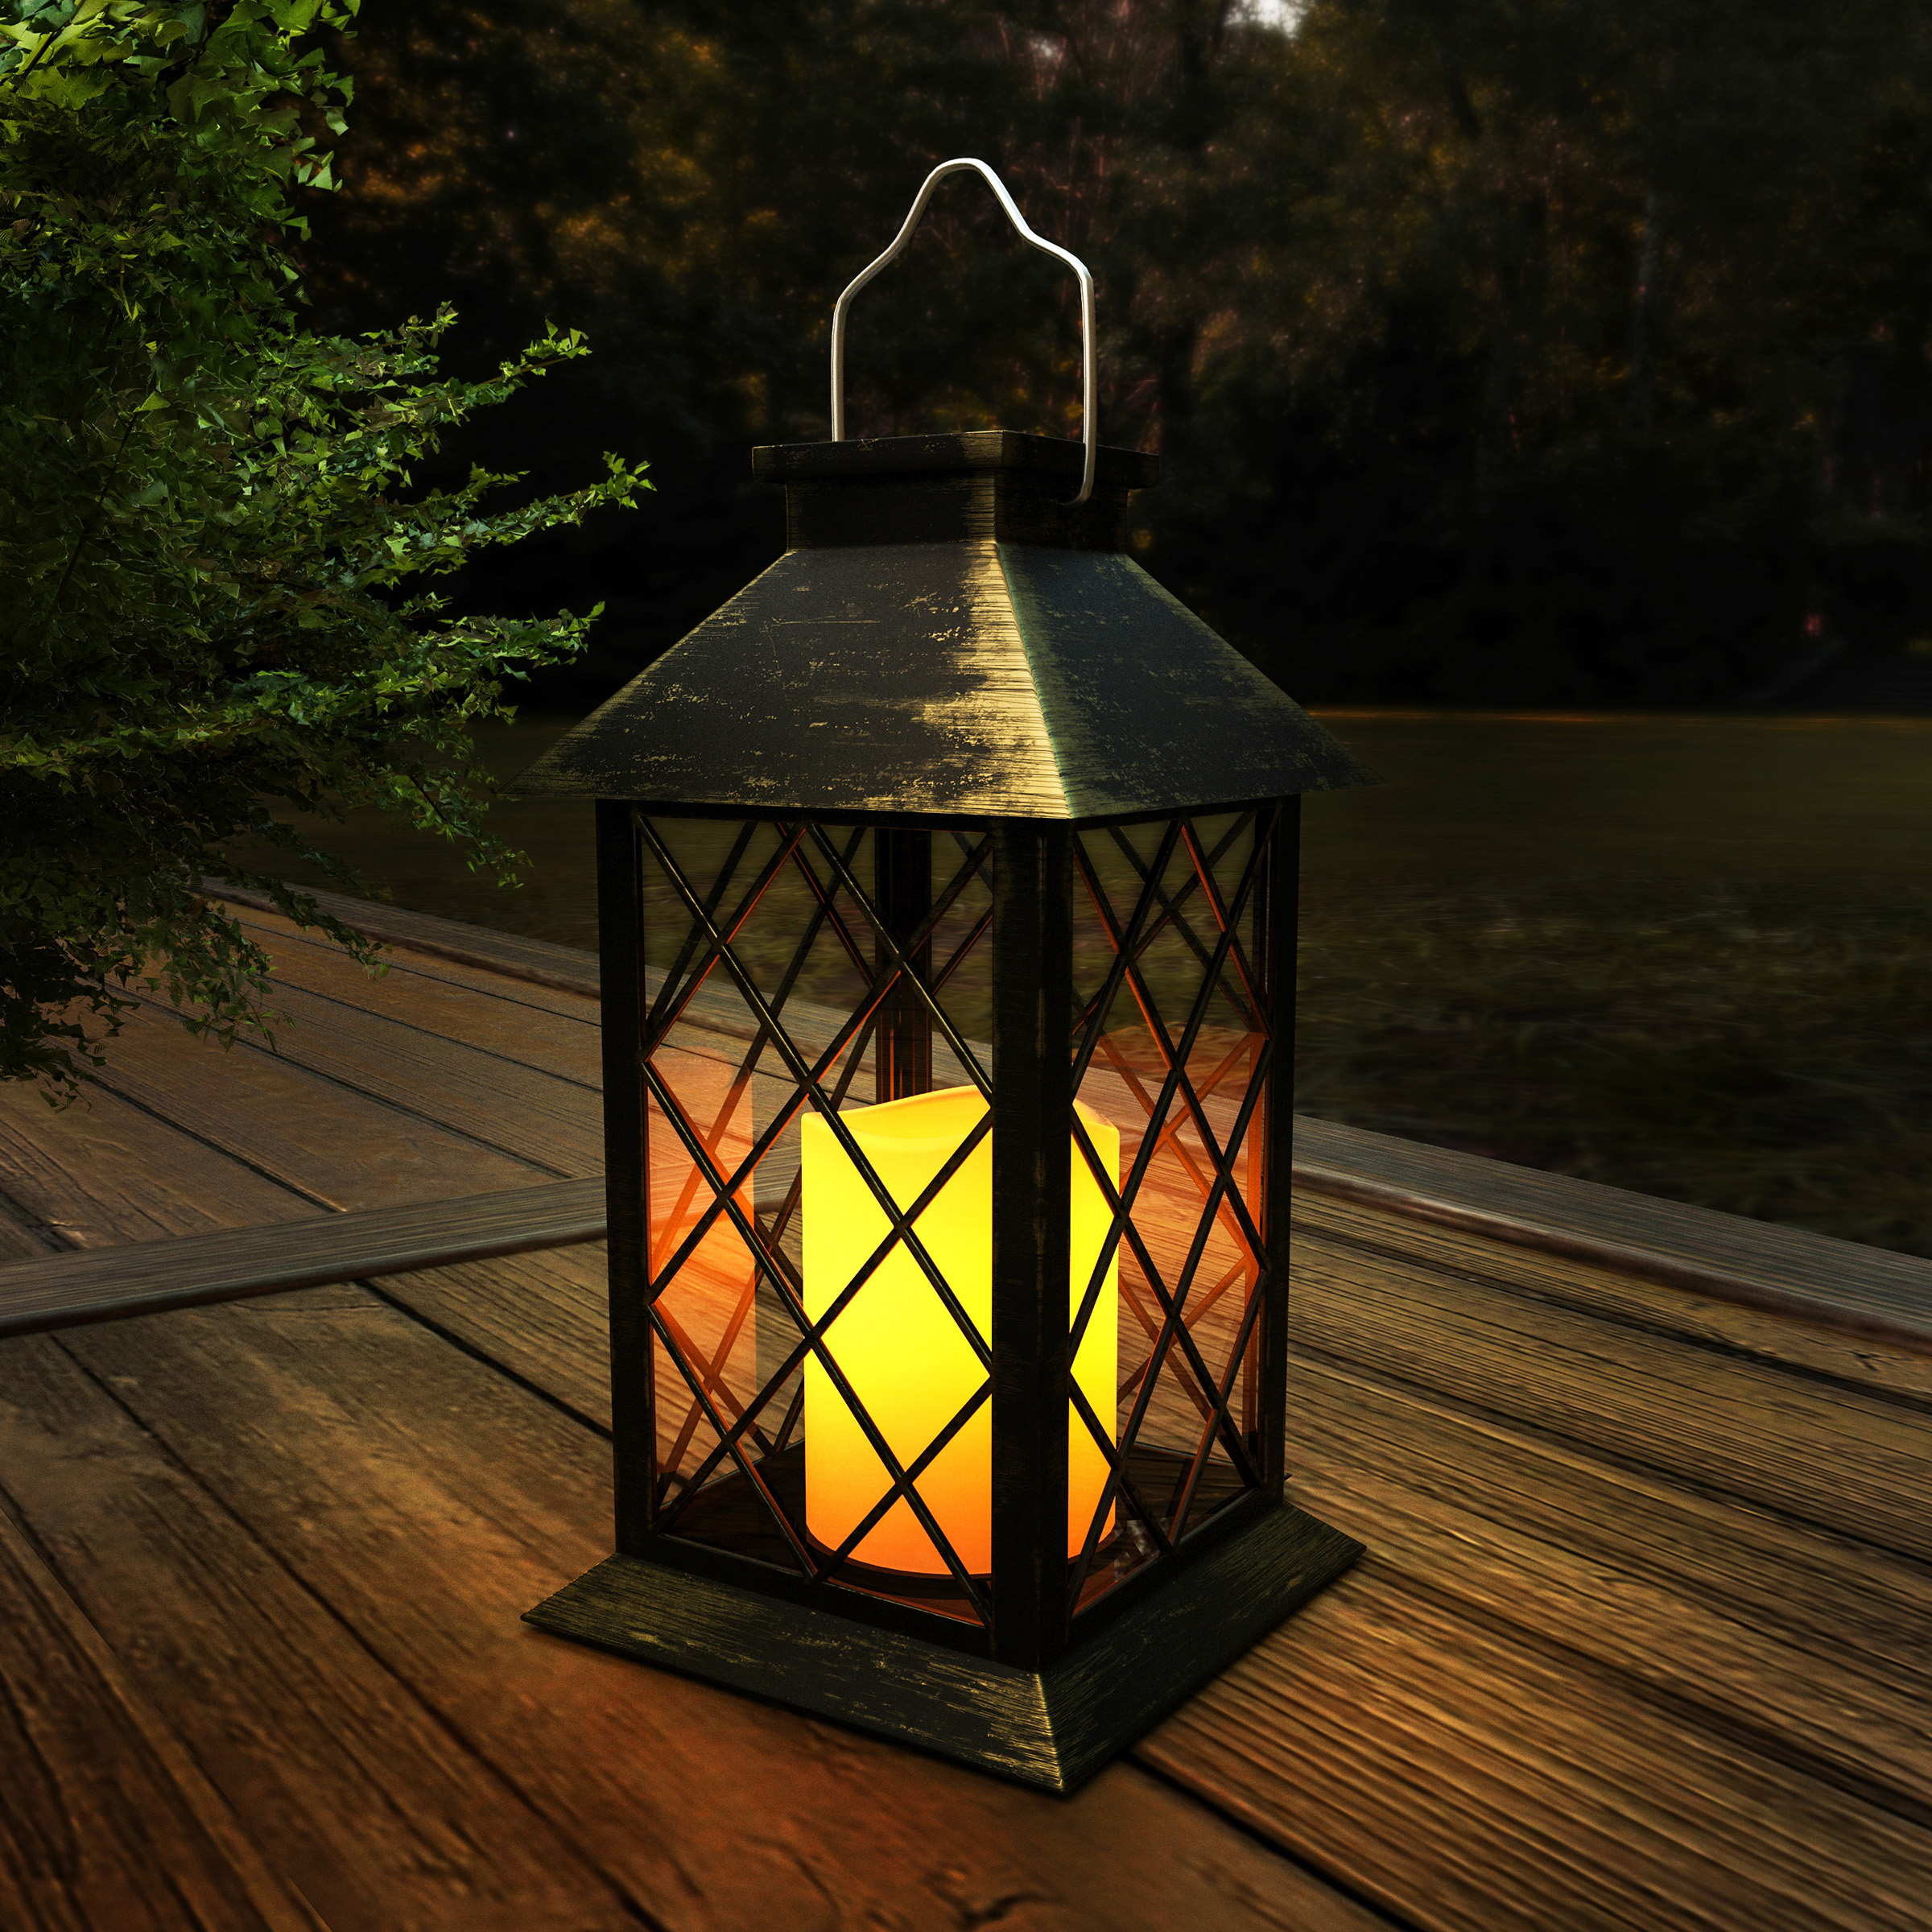 Solar Powered Lantern- Hanging or Tabletop Water Resistant LED Pillar Candle Lamp for Indoors or Outdoors-Classic Home and Garden Decor by Lavish Home